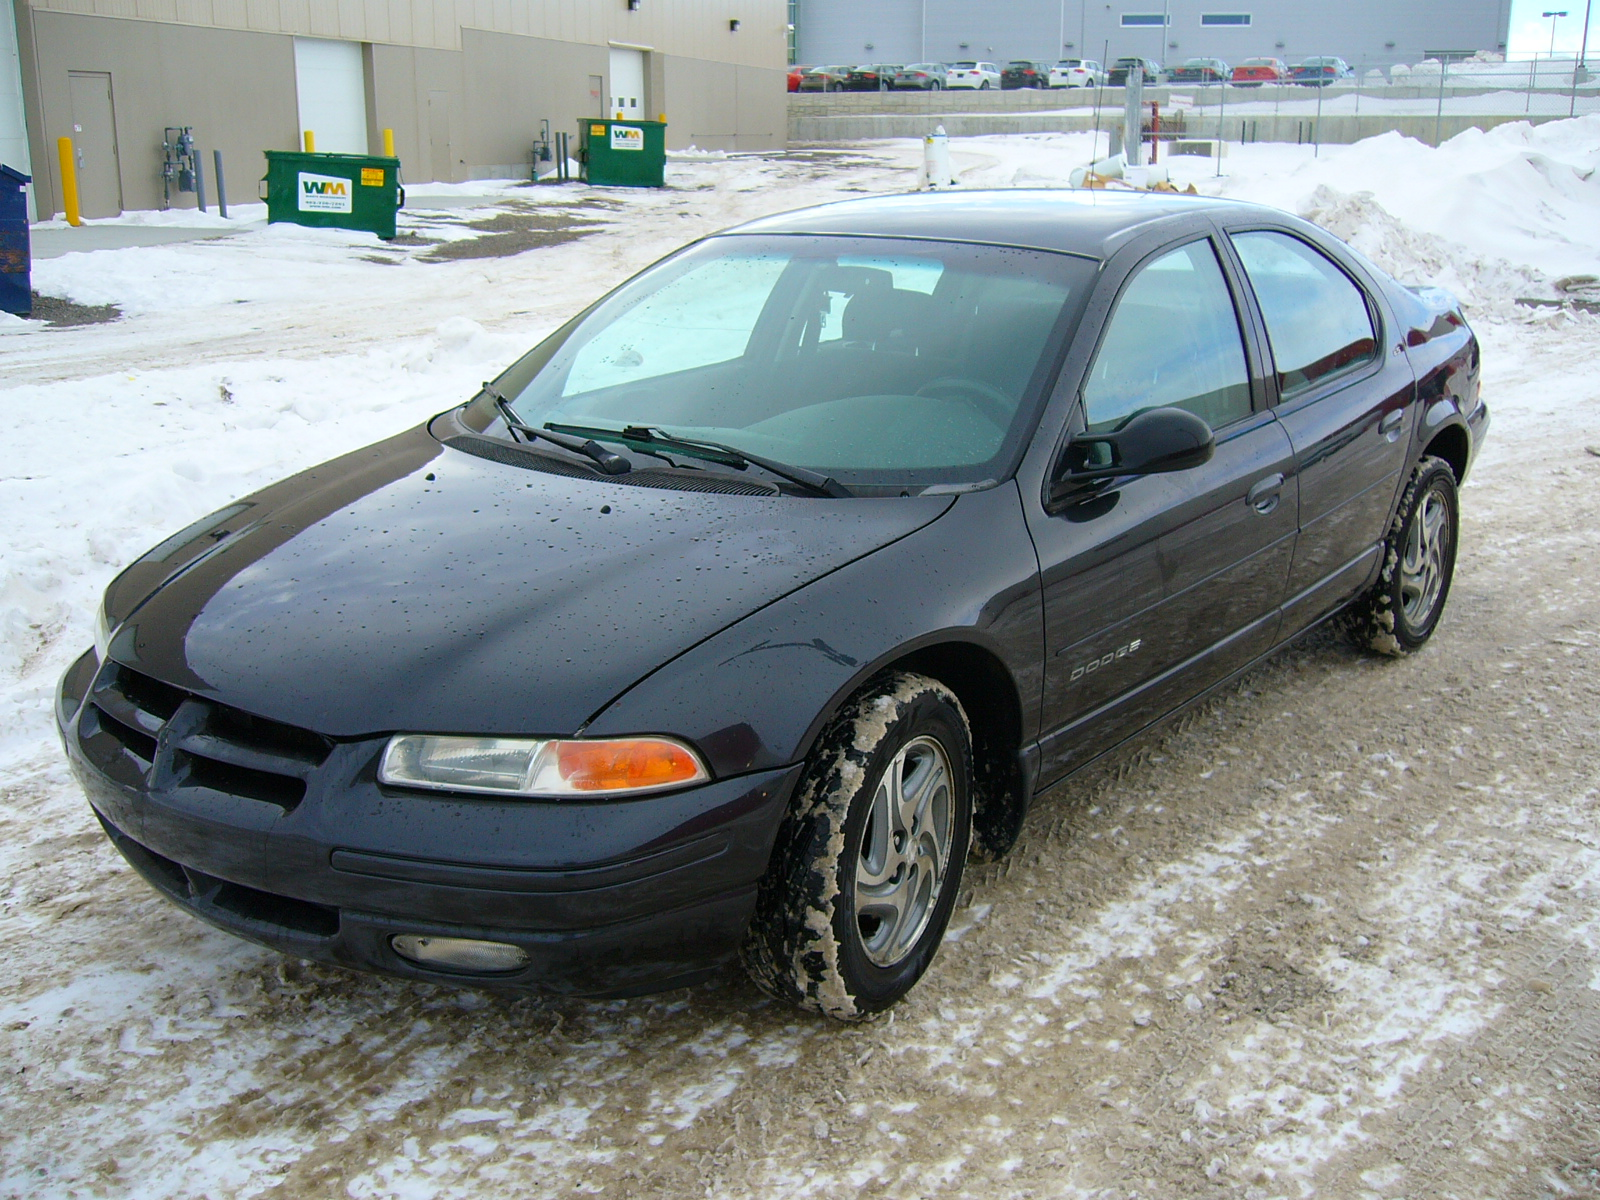 1998 Dodge Stratus 4 Dr ES Sedan picture